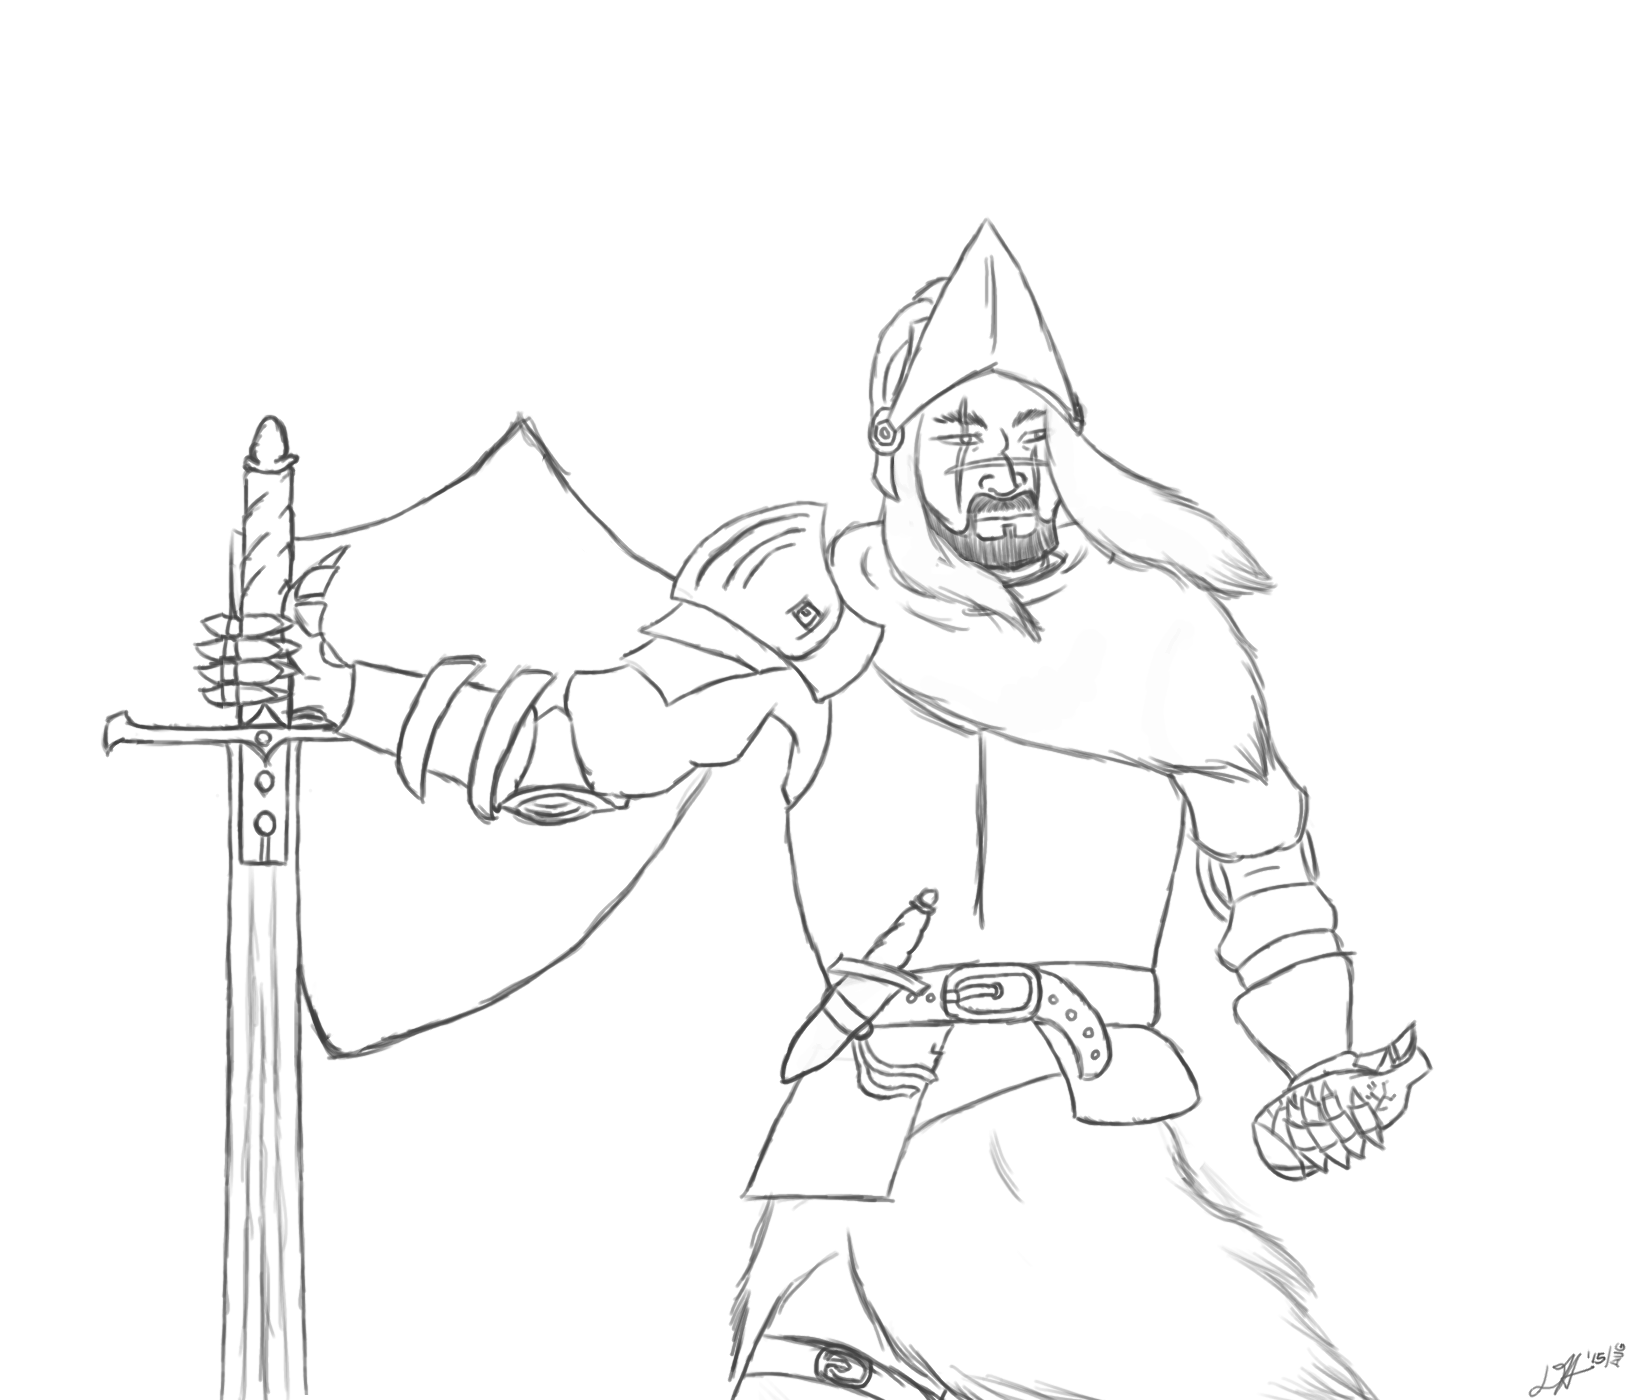 dks3_oroi_lineart__by_weliver-d94jzyj.pn